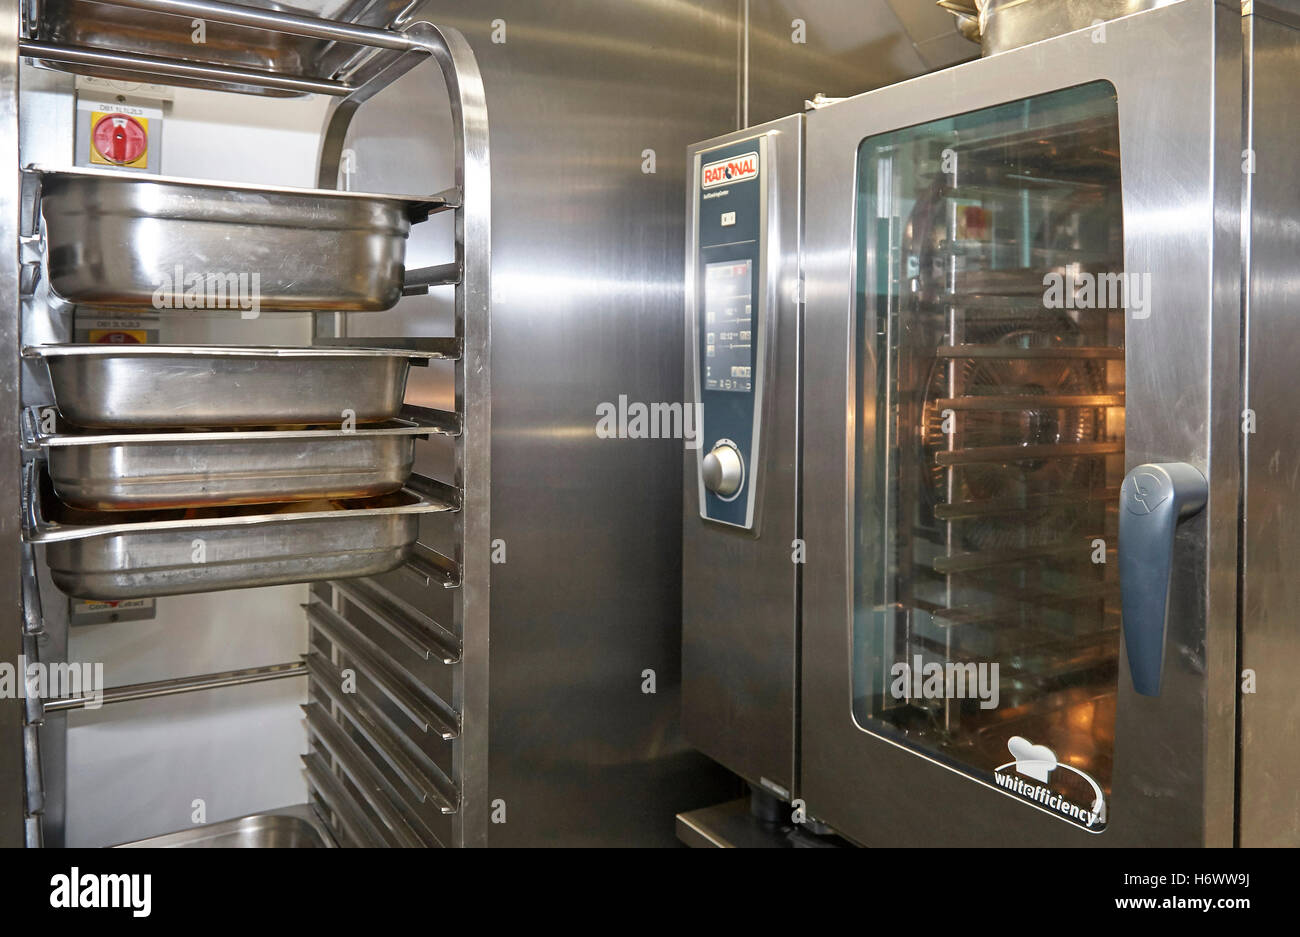 Industrial sized oven in a commercial kitchen. Stock Photo